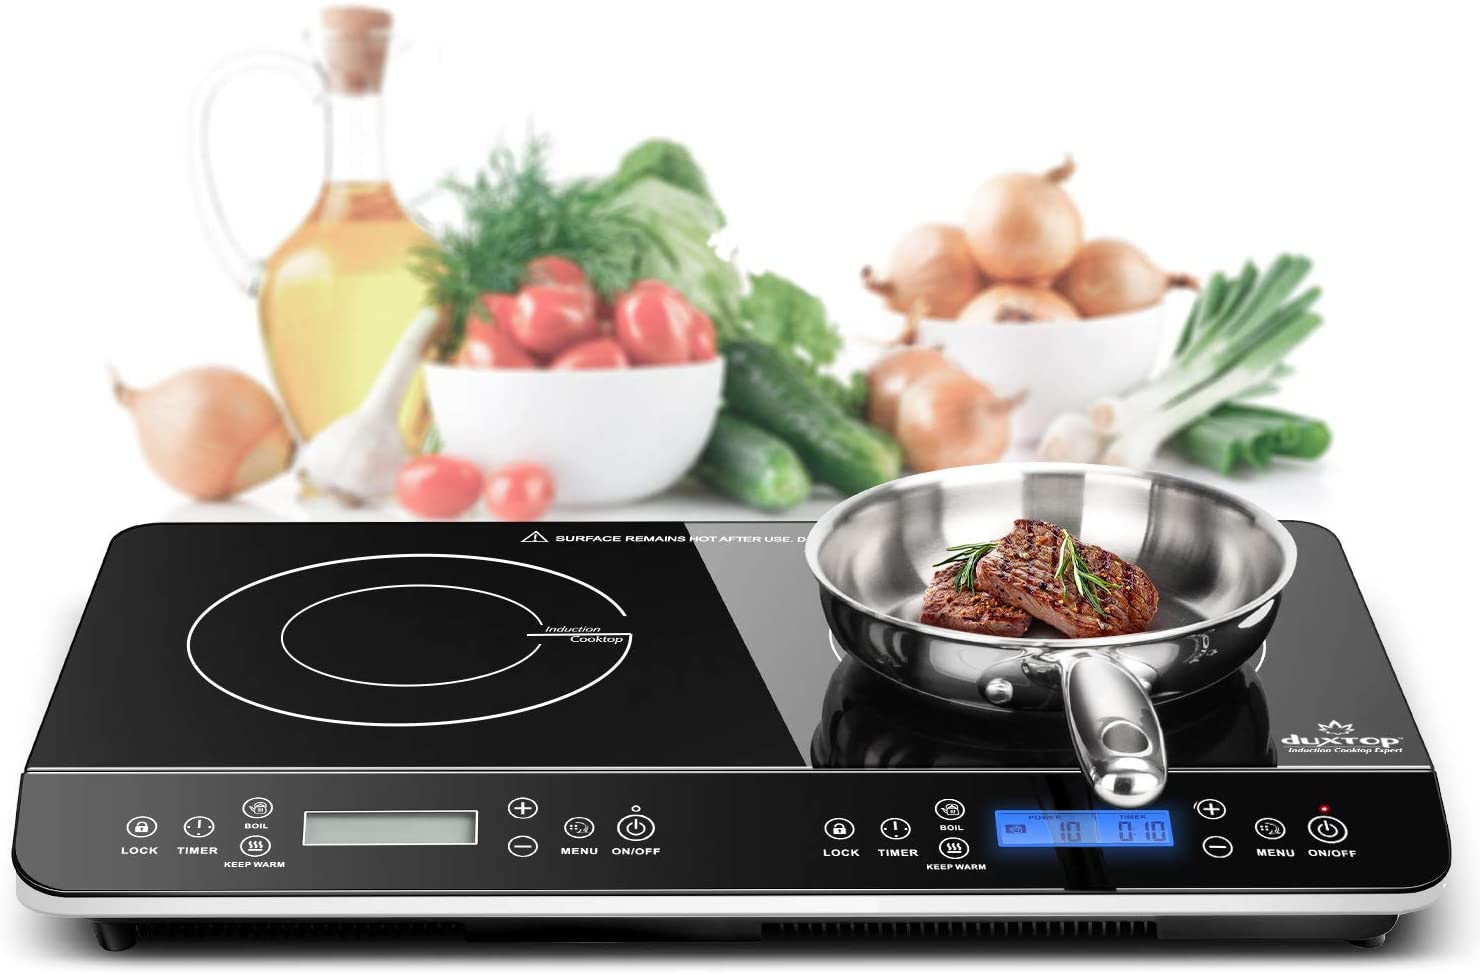 The Best Double Induction Cooktop – Consumer Reports for 2021